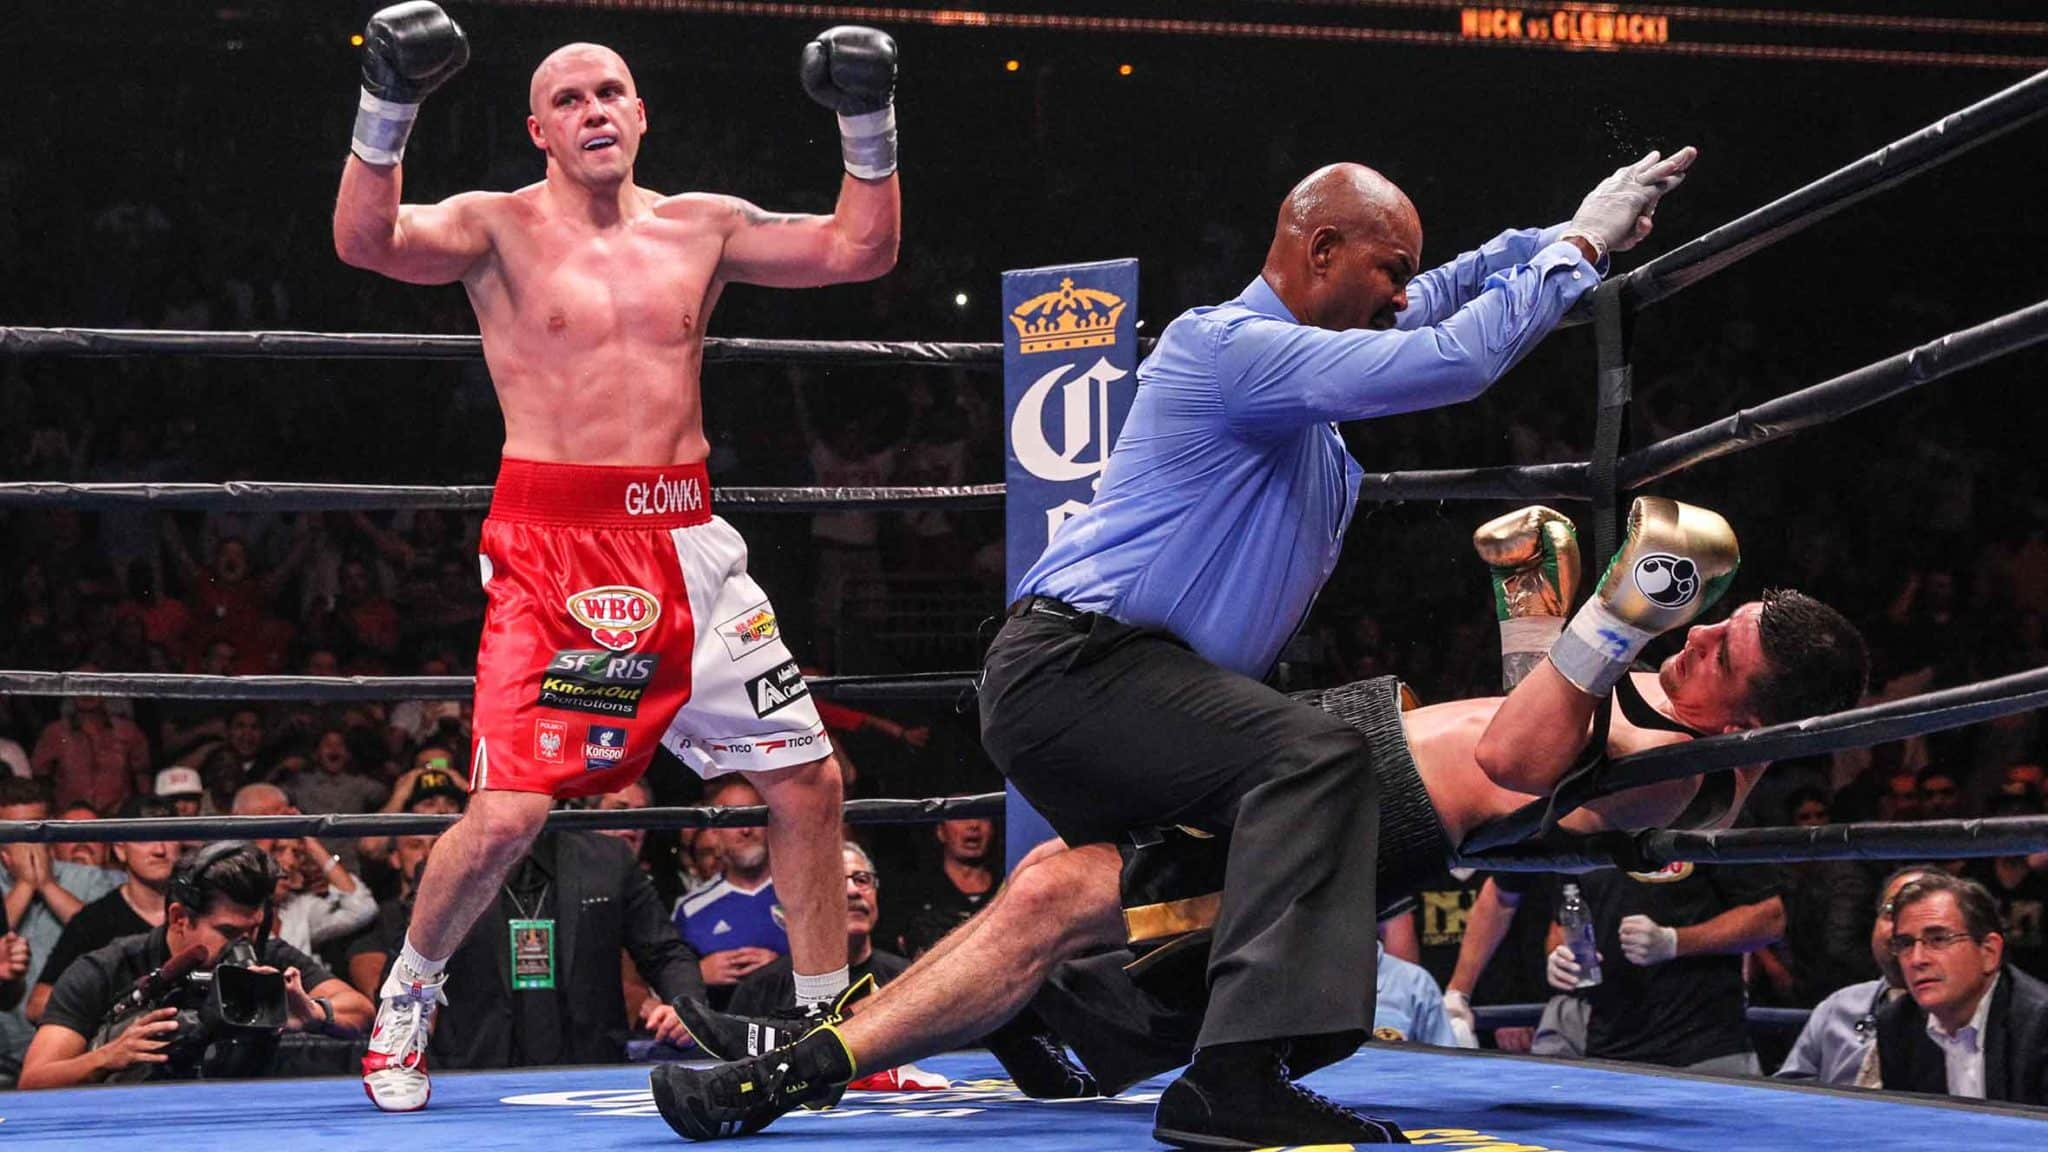 Krzysztof Glowacki Knocks Out Marco Huck In Fight Of The Year Candidate In An Massive Upset.